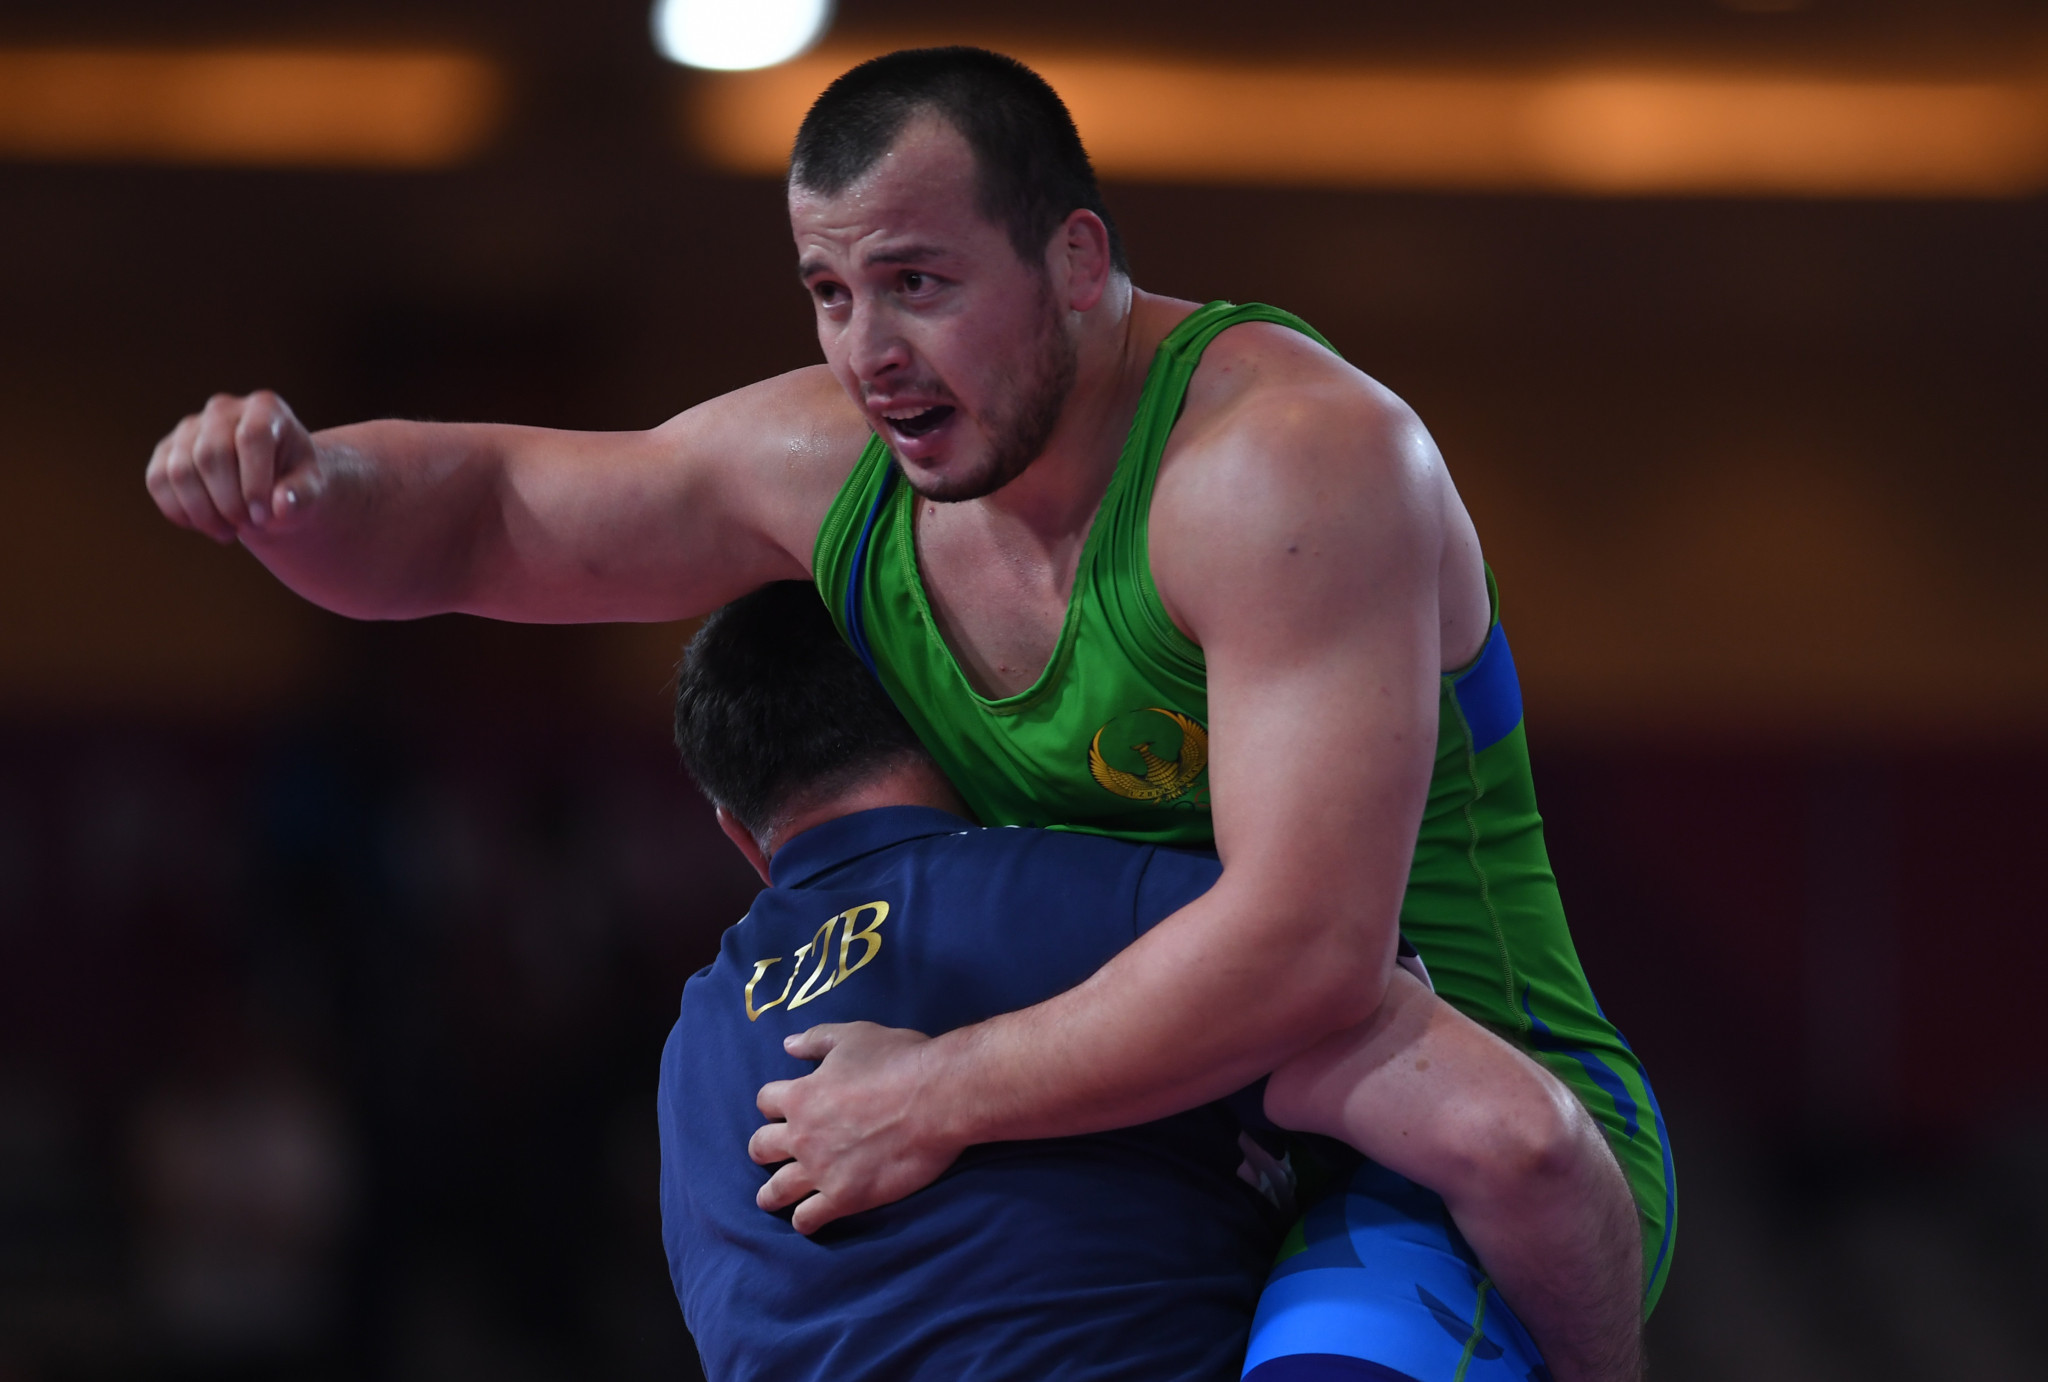 Muminjon Abdullaev secured Olympic qualification in the under-130kg division ©Getty Images